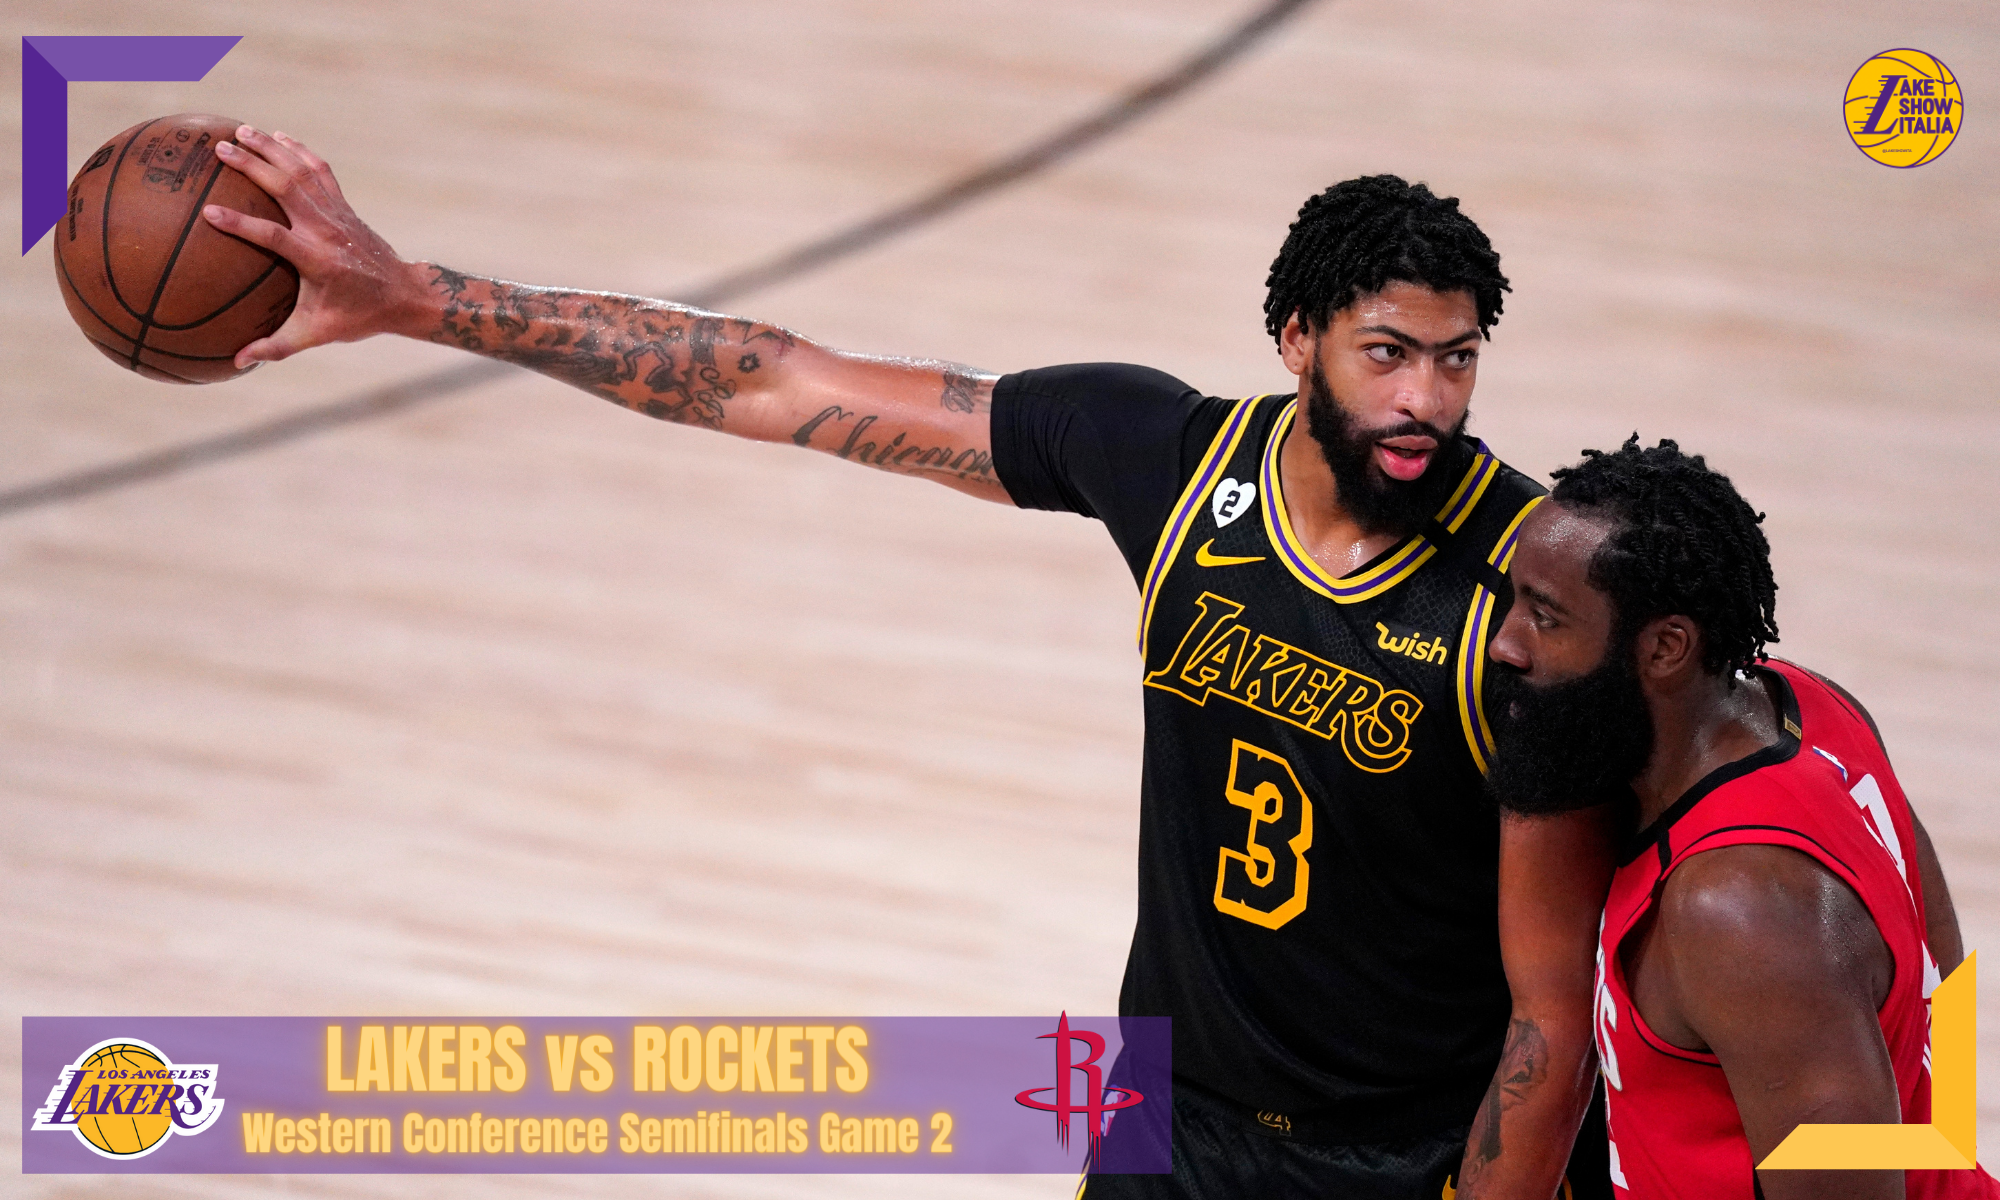 Los Angeles Lakers' Anthony Davis (3) extends his arm with the ball as James Harden defends him during the second half of an NBA conference semifinal playoff basketball game Sunday, Sept. 6, 2020, in Lake Buena Vista, Fla. The Lakers won 117-109.